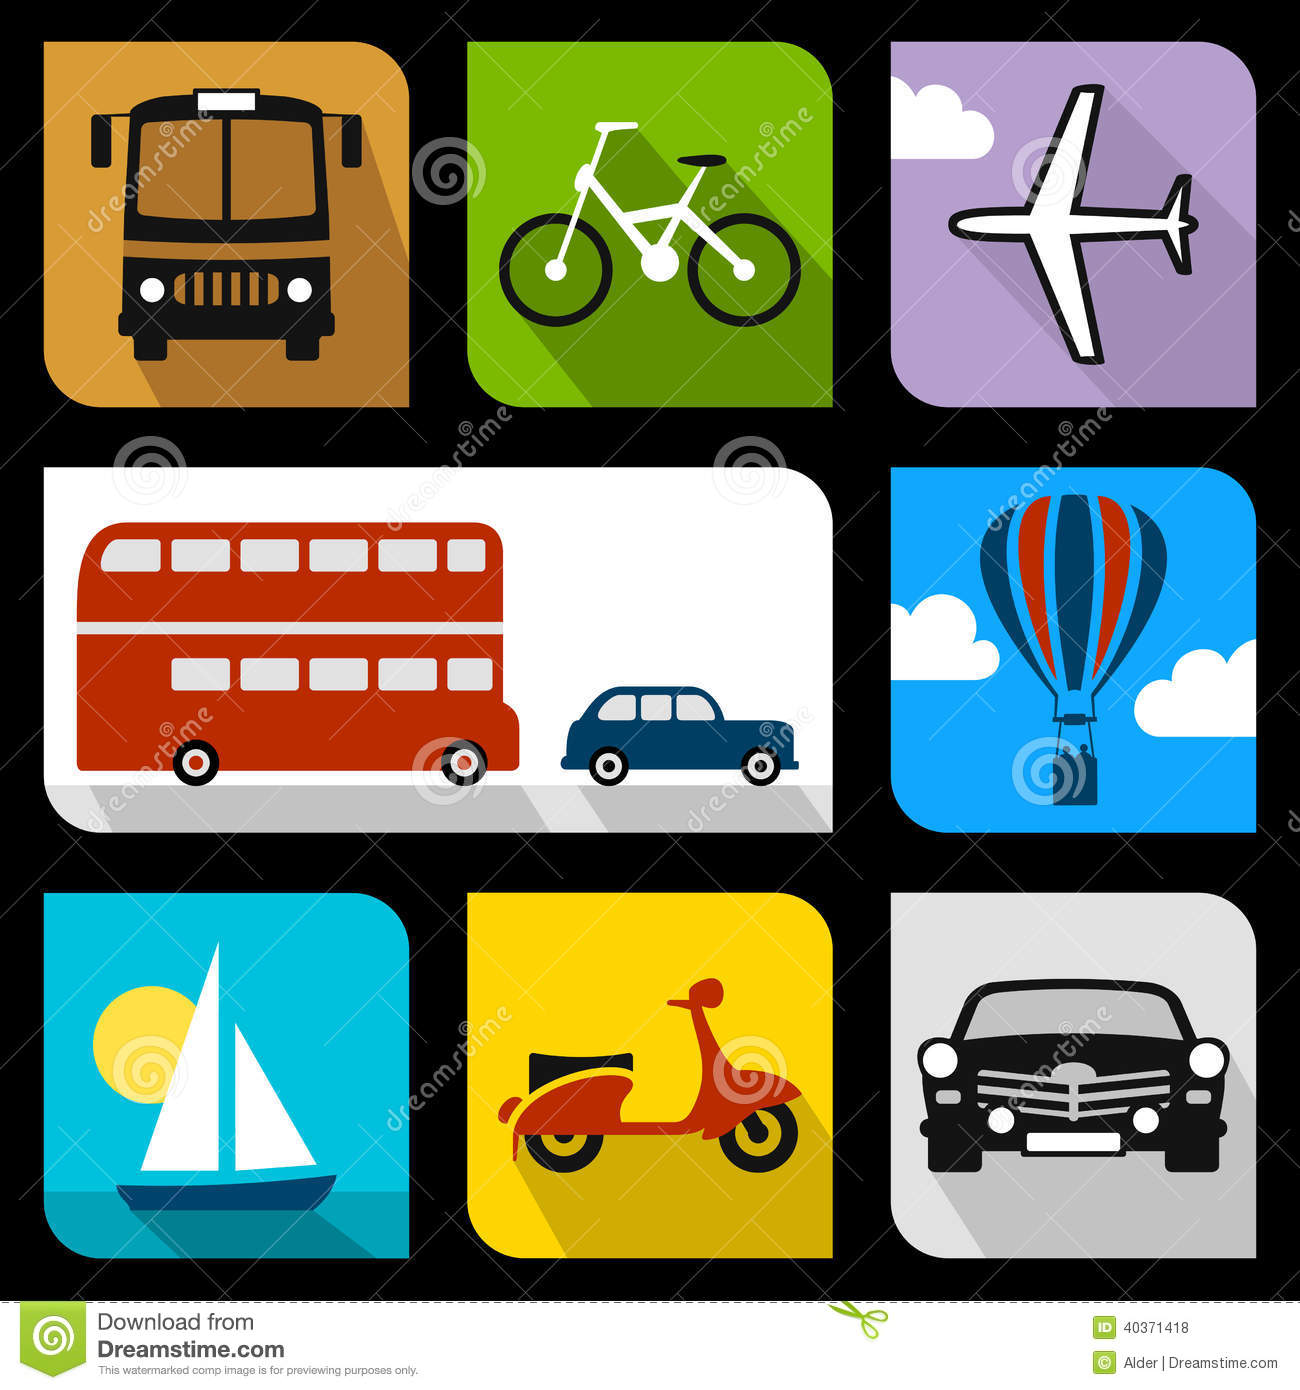 Download Transportation flat icons stock vector. Illustration of cloud - 40371418